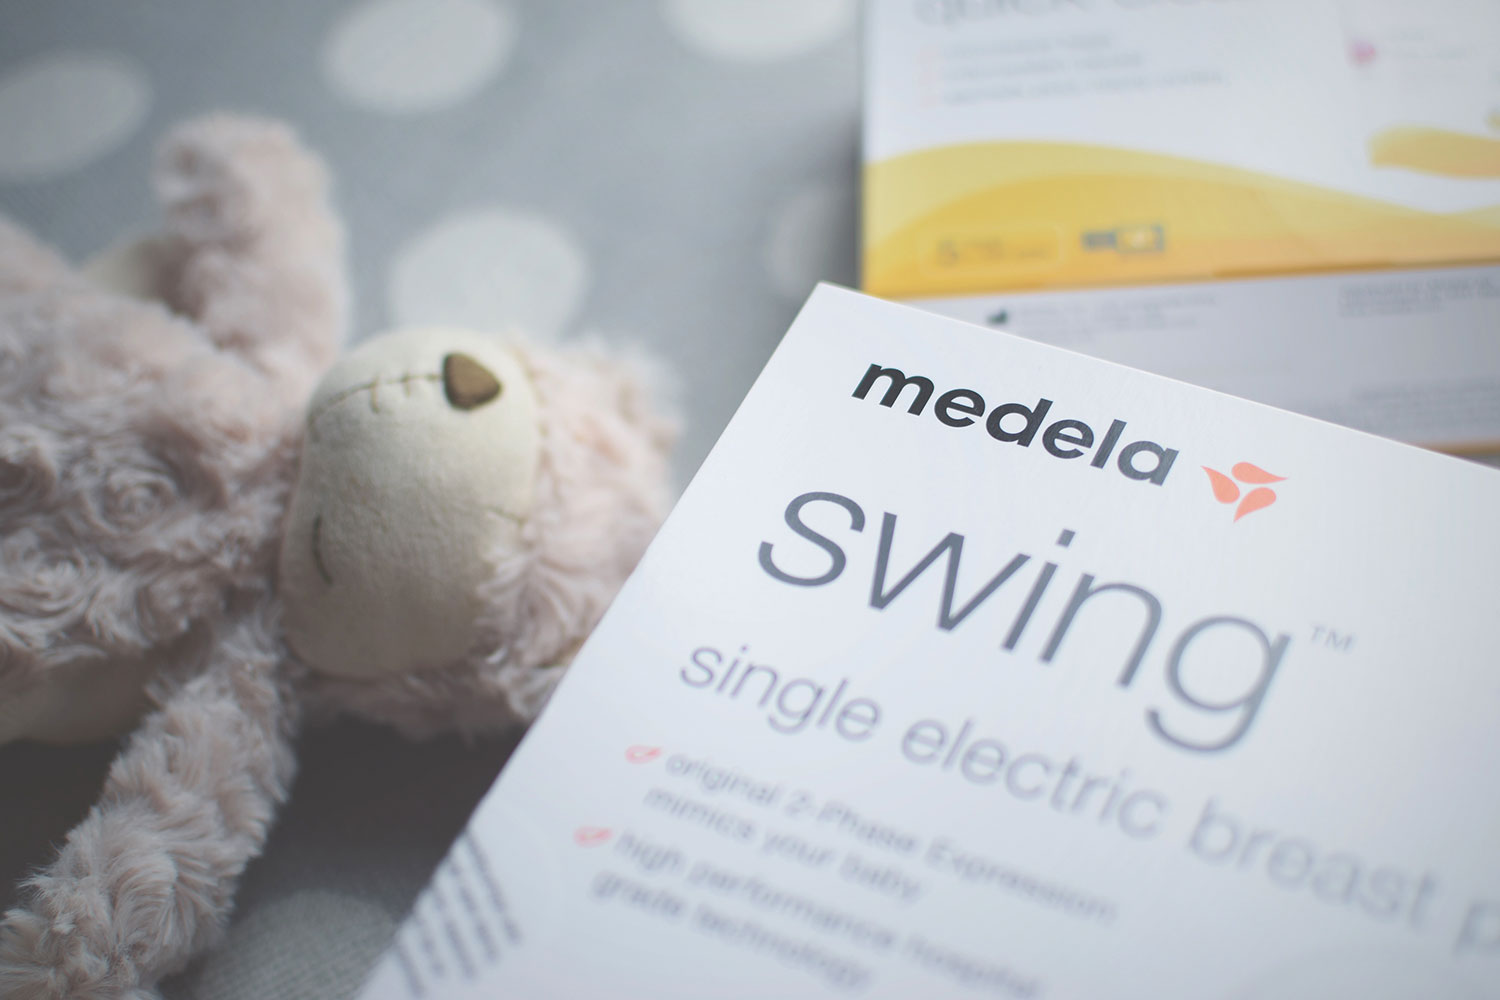 Mama's Boobies review.. the Medela Swing Breast Pump — The Swing breast pump is Medela's smallest and lightest 2-Phase pump